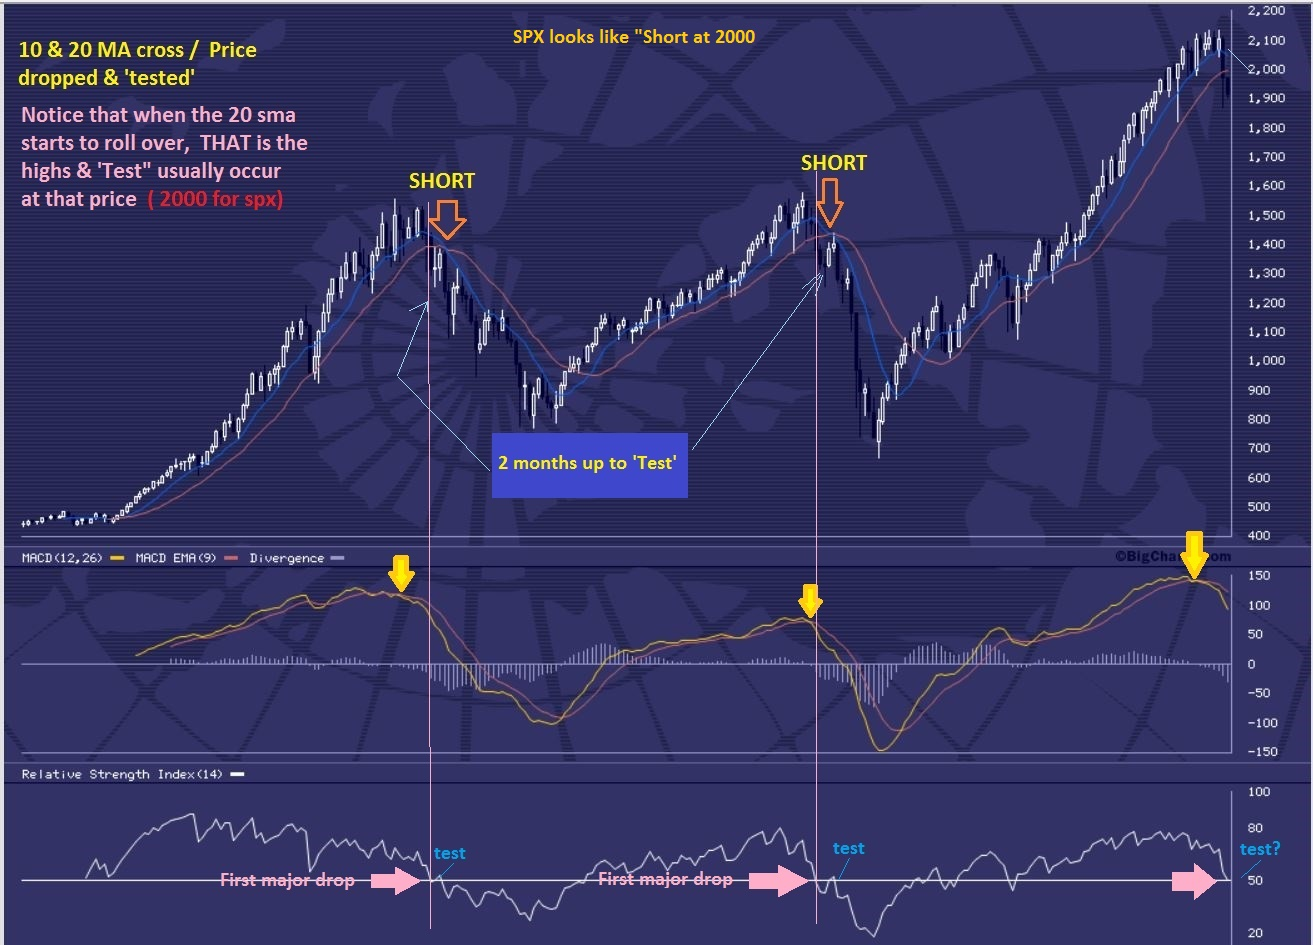 SPX MONTHLY SELL